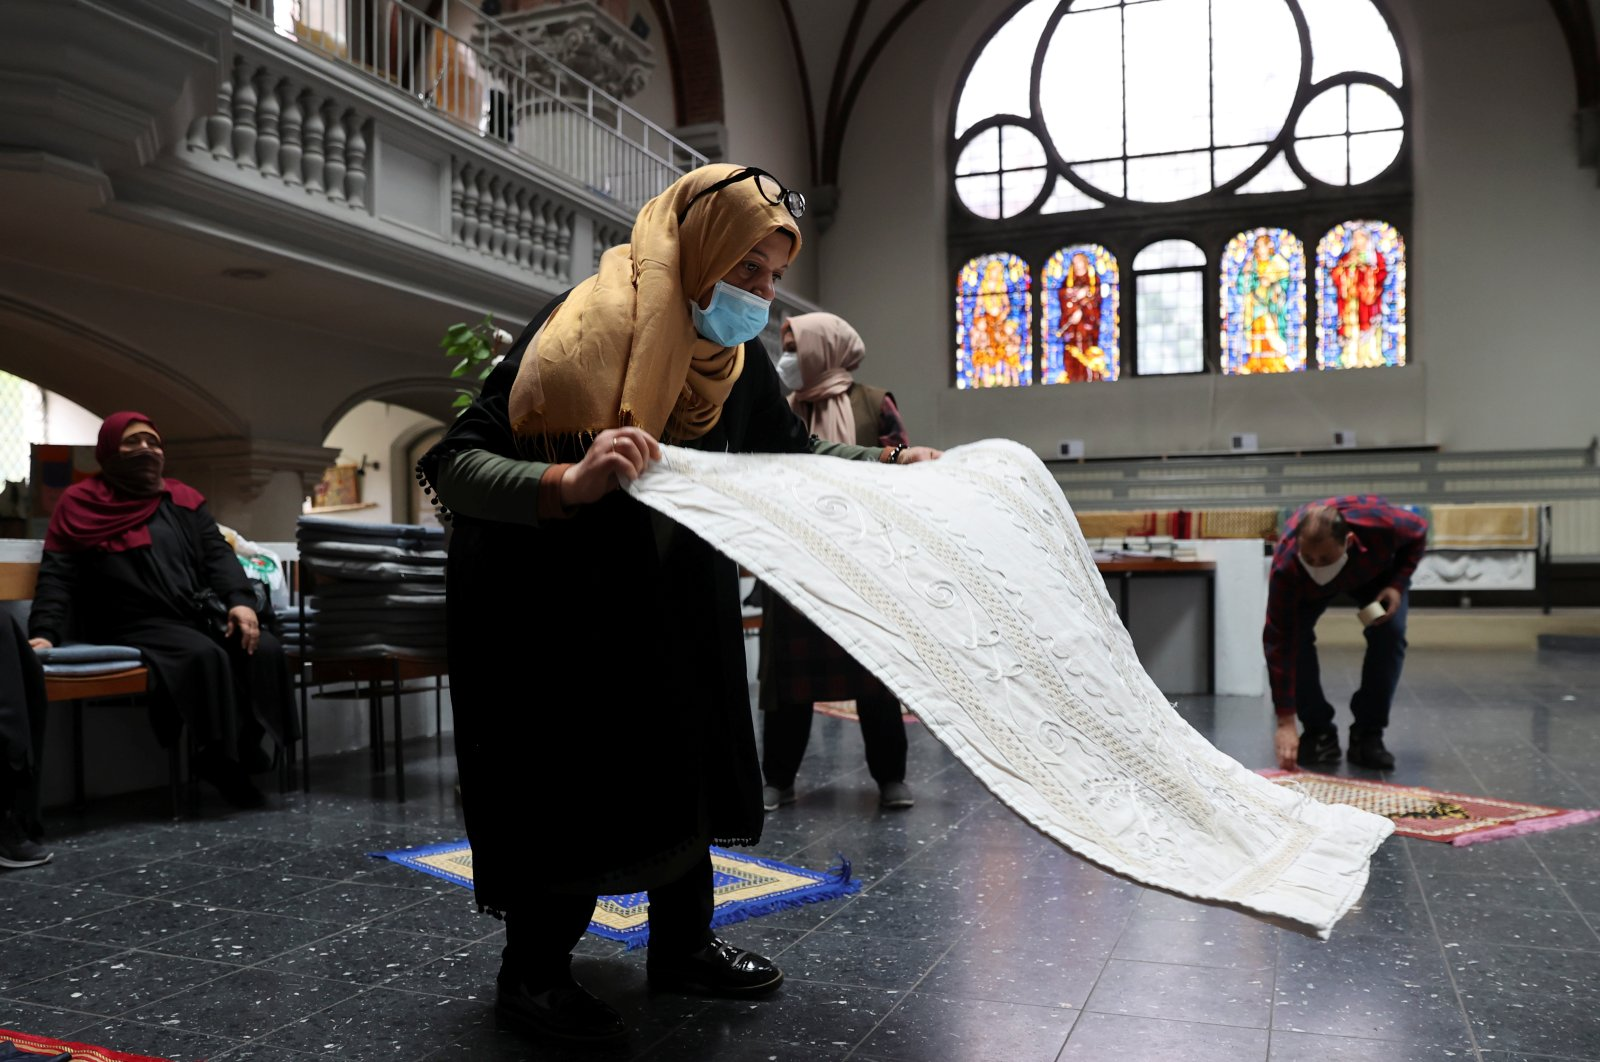 A muslim prepares inside the evangelical church of St. Martha's parish, for their Friday prayers, as the community mosque can't fit everybody in due to social distancing rules, amid the coronavirus disease (COVID-19) outbreak in Berlin, Germany, May 22, 2020. (Reuters Photo)